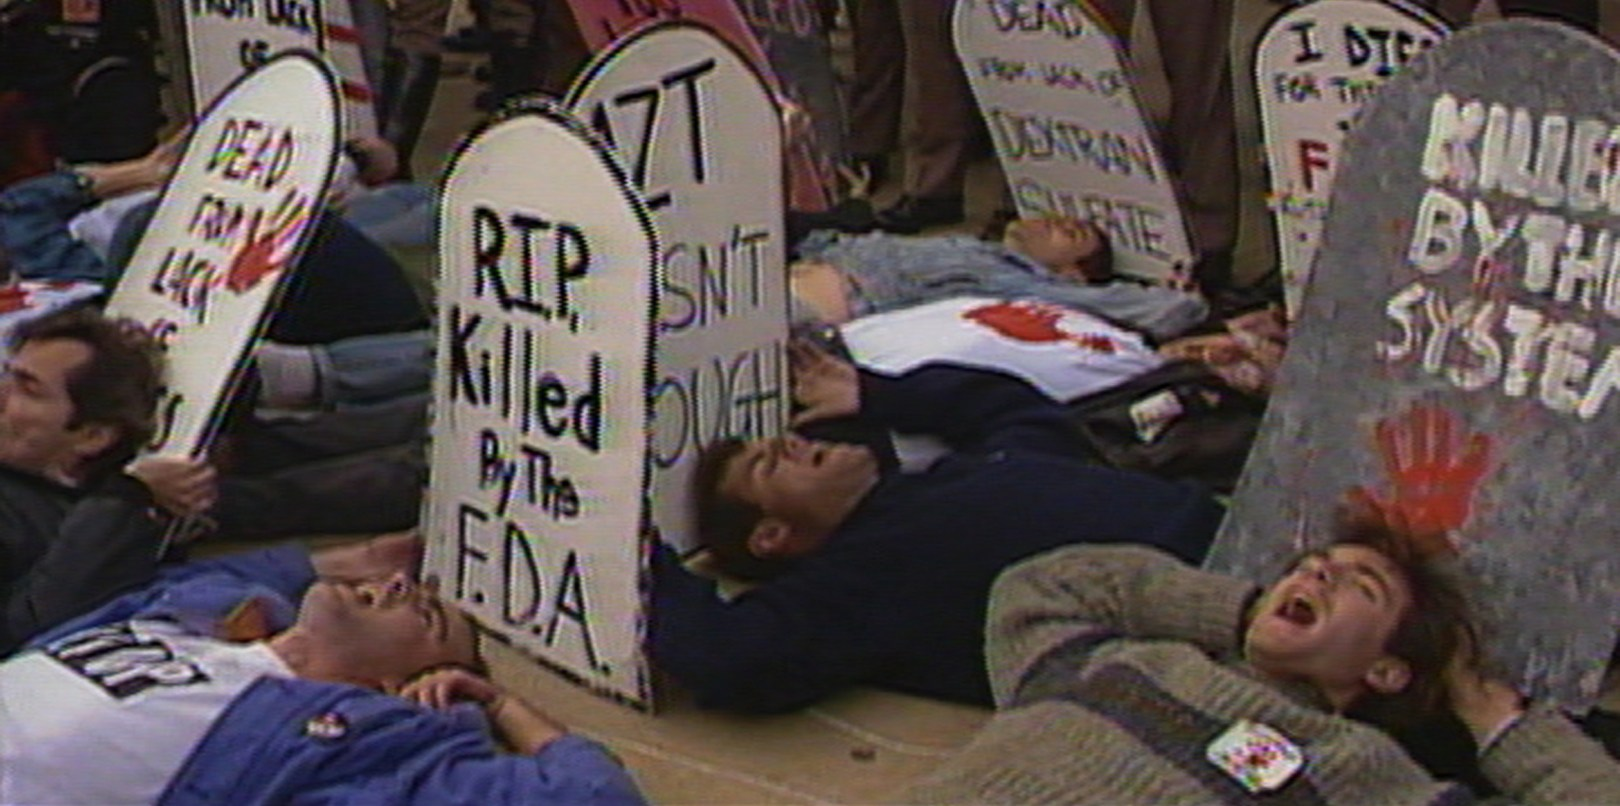 Films in London today: UNITED IN ANGER: A HISTORY OF ACT UP at Rich Mix (01 MAY).